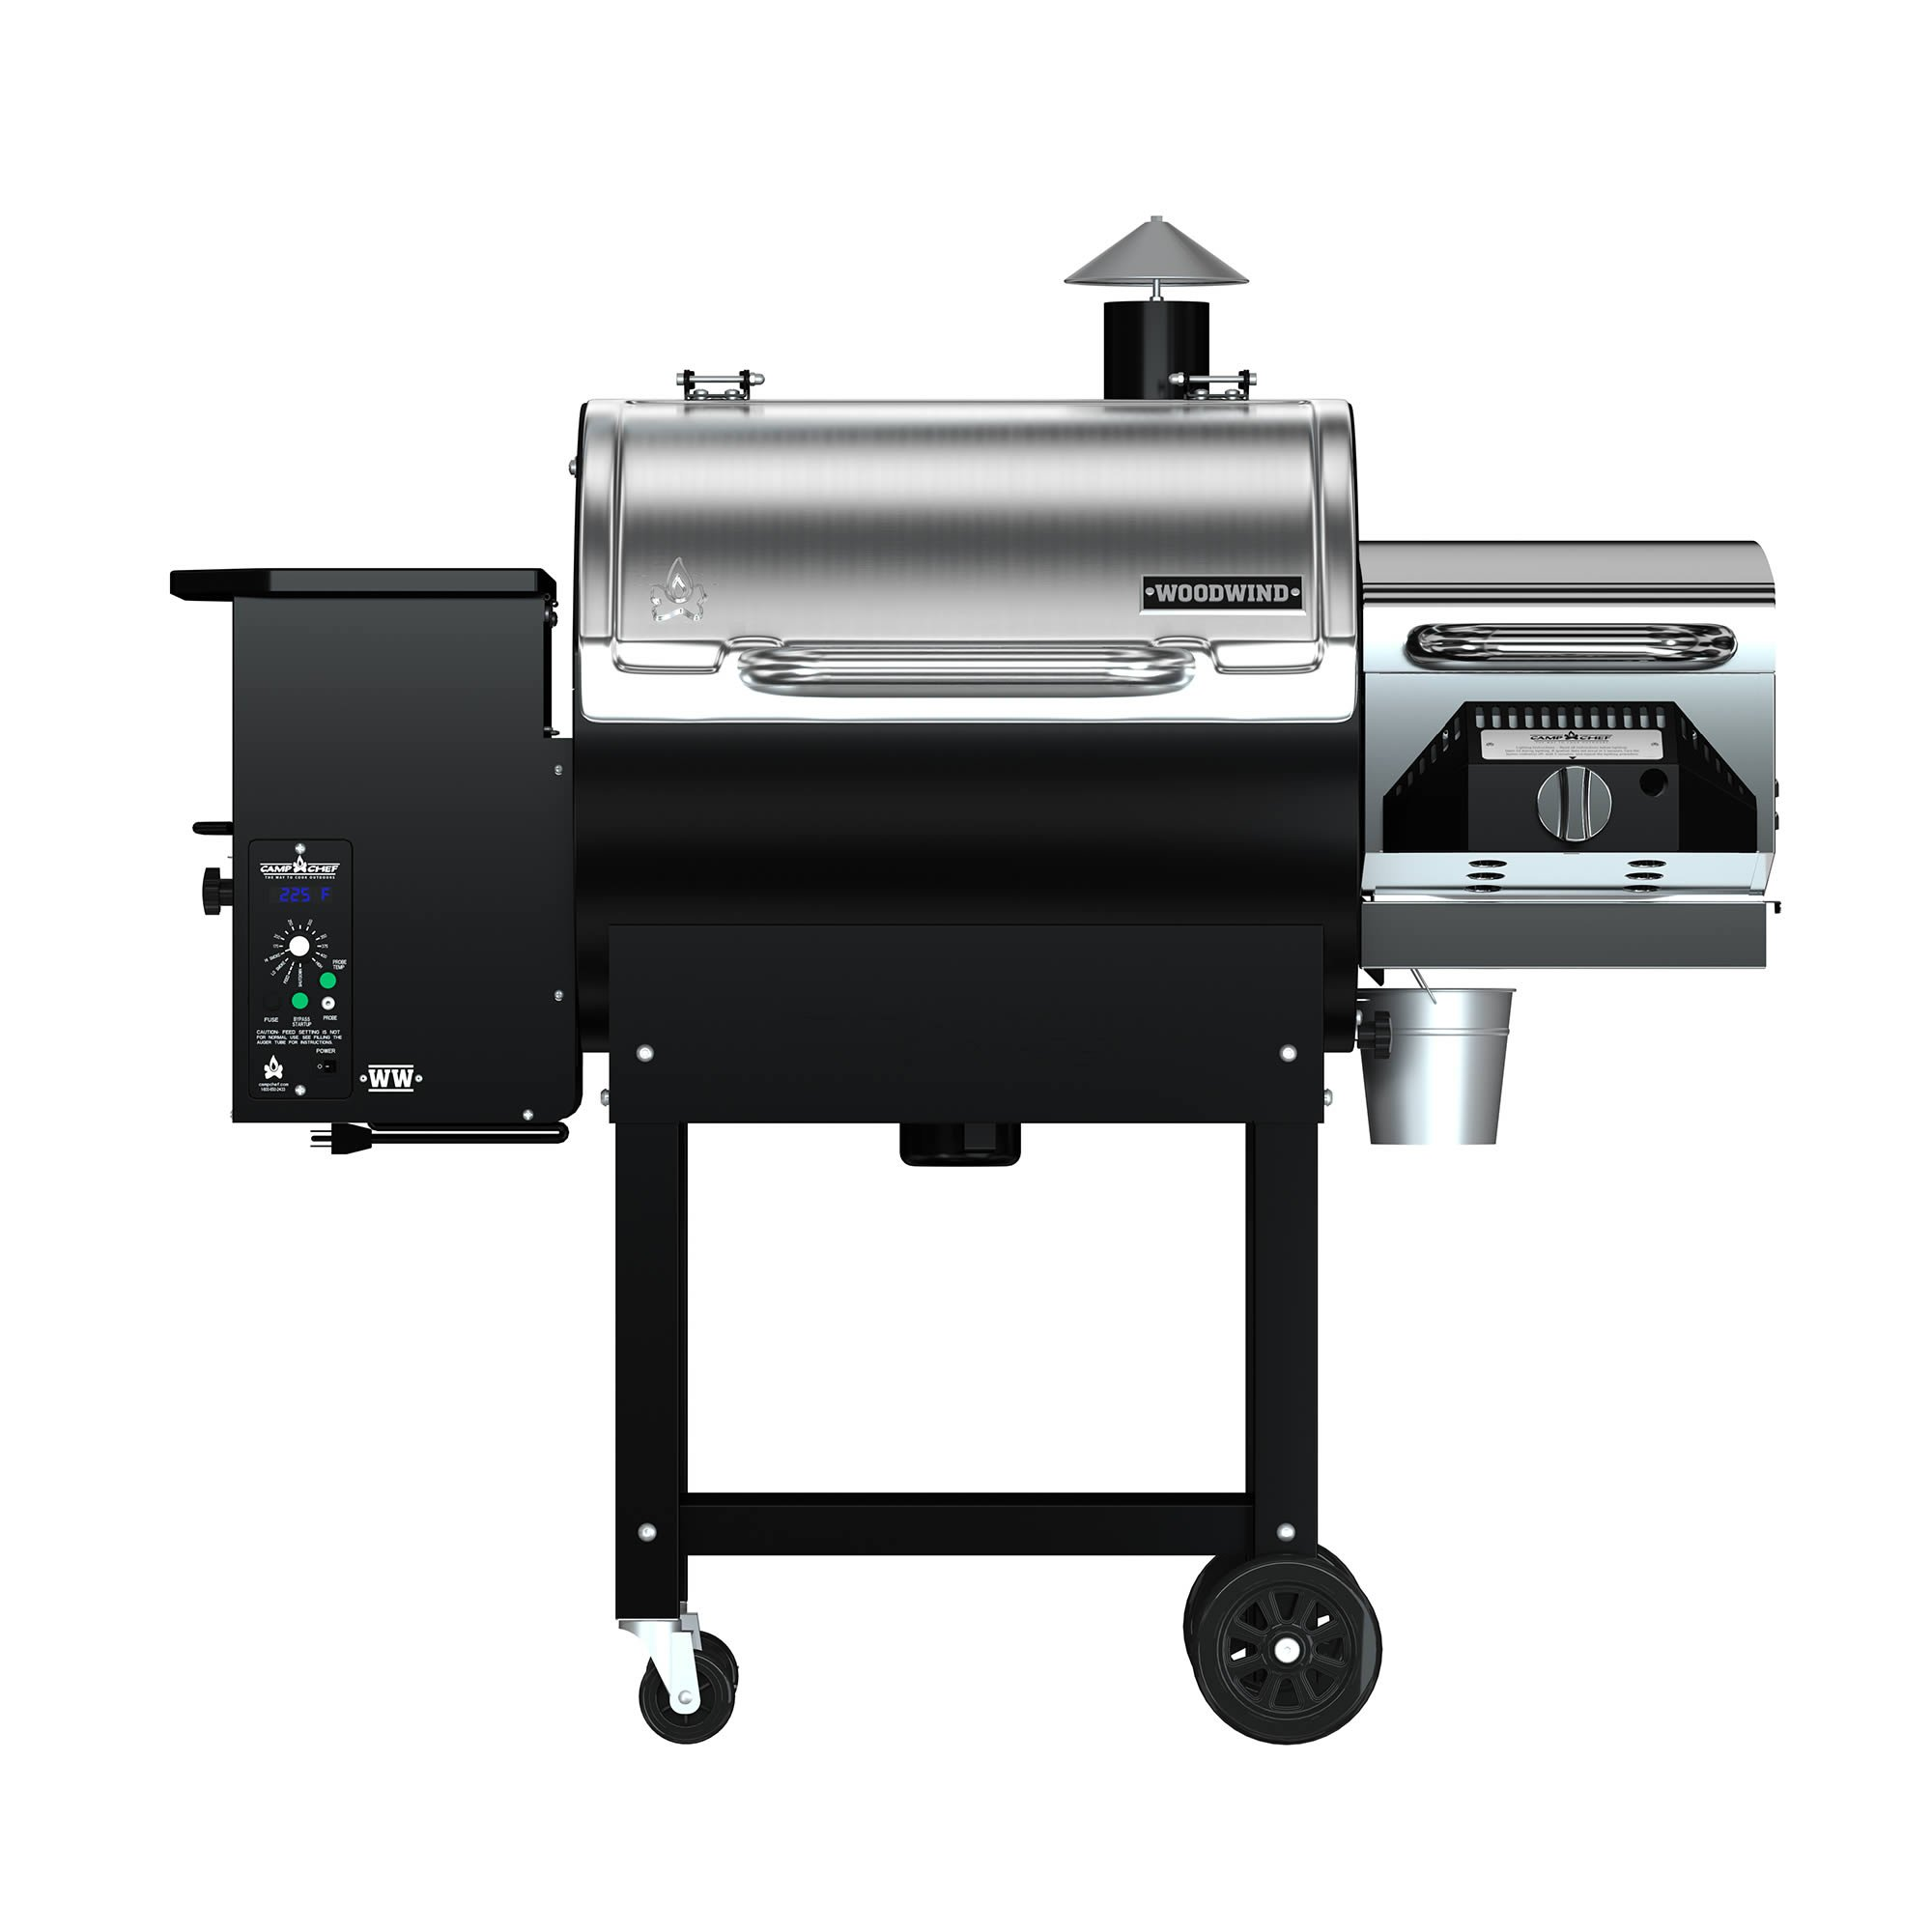 Camp Chef Woodwind Pellet Grill with Sear Box - Smart Smoke Technology - Ash Cleanout System by Camp Chef (Image #3)